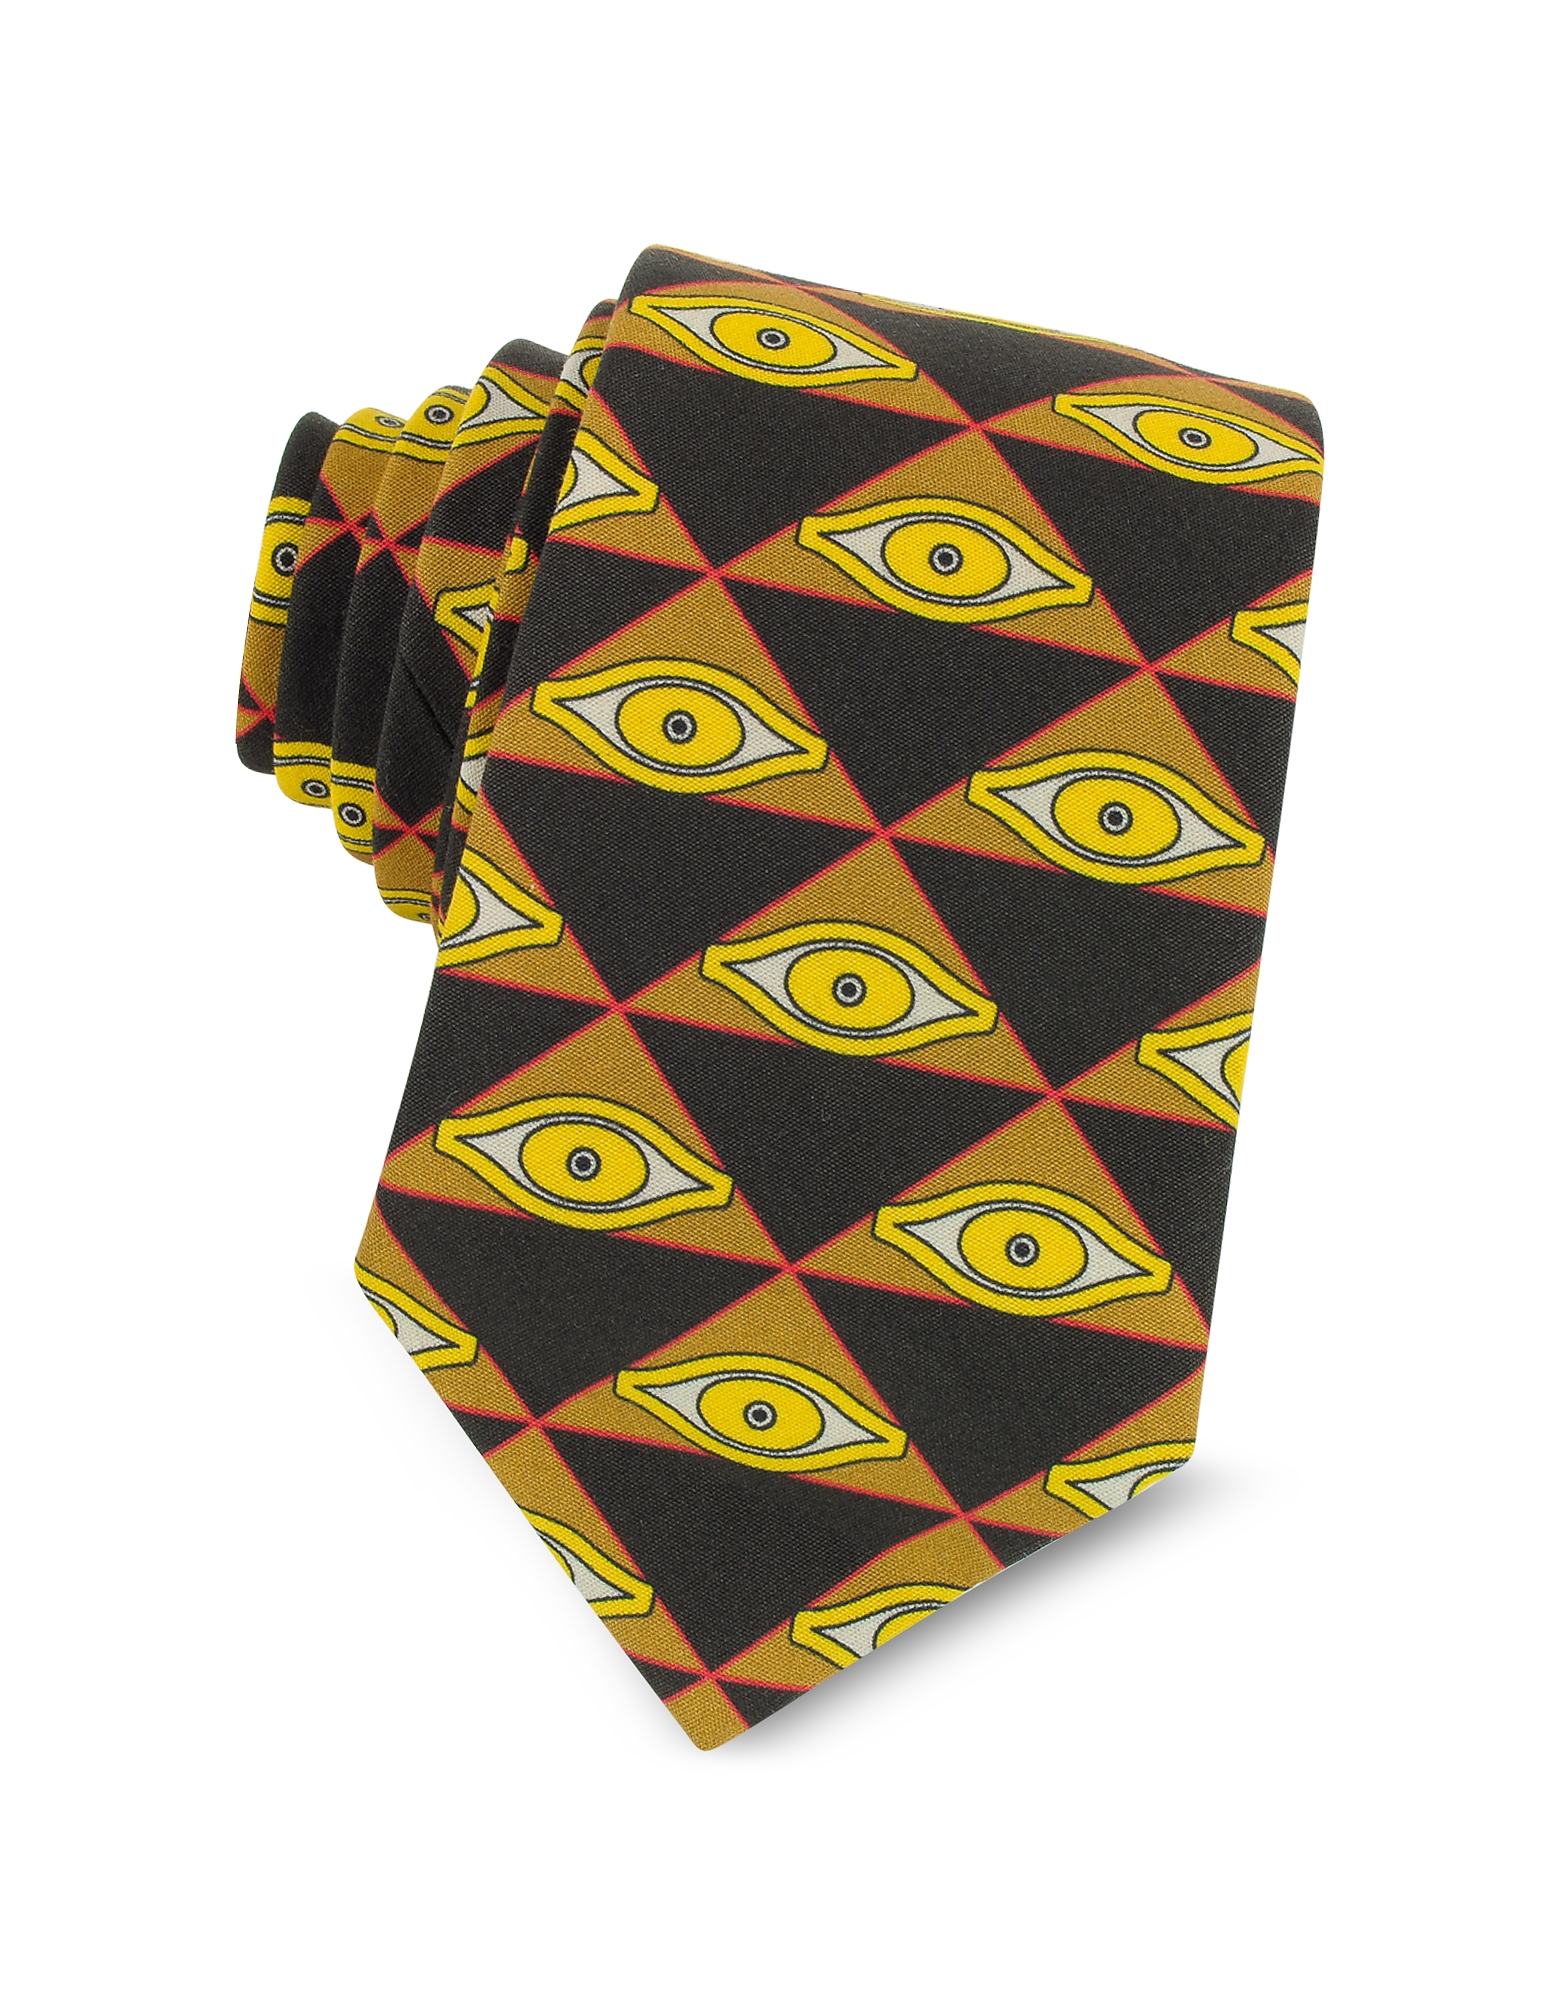 Eyes and Triangles Printed Cotton Narrow Tie, Black